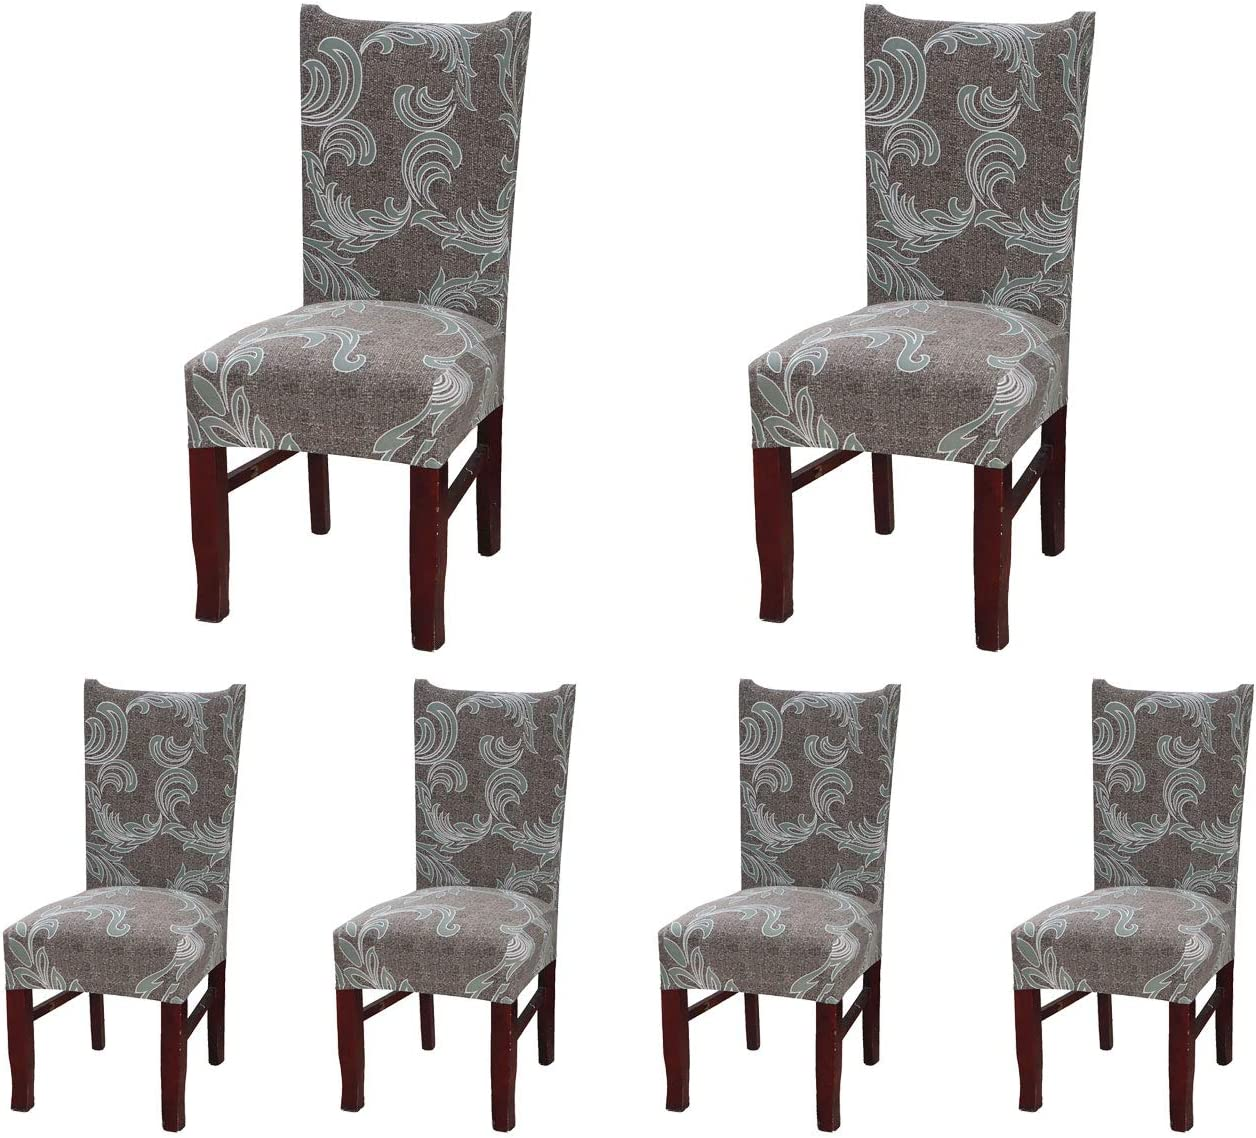 SoulFeel 6 x Soft Spandex Fit Stretch Short Dining Room Chair Covers with Printed Pattern, Banquet Chair Seat Protector Slipcover for Home Party Hotel Wedding Ceremony (Style 25)